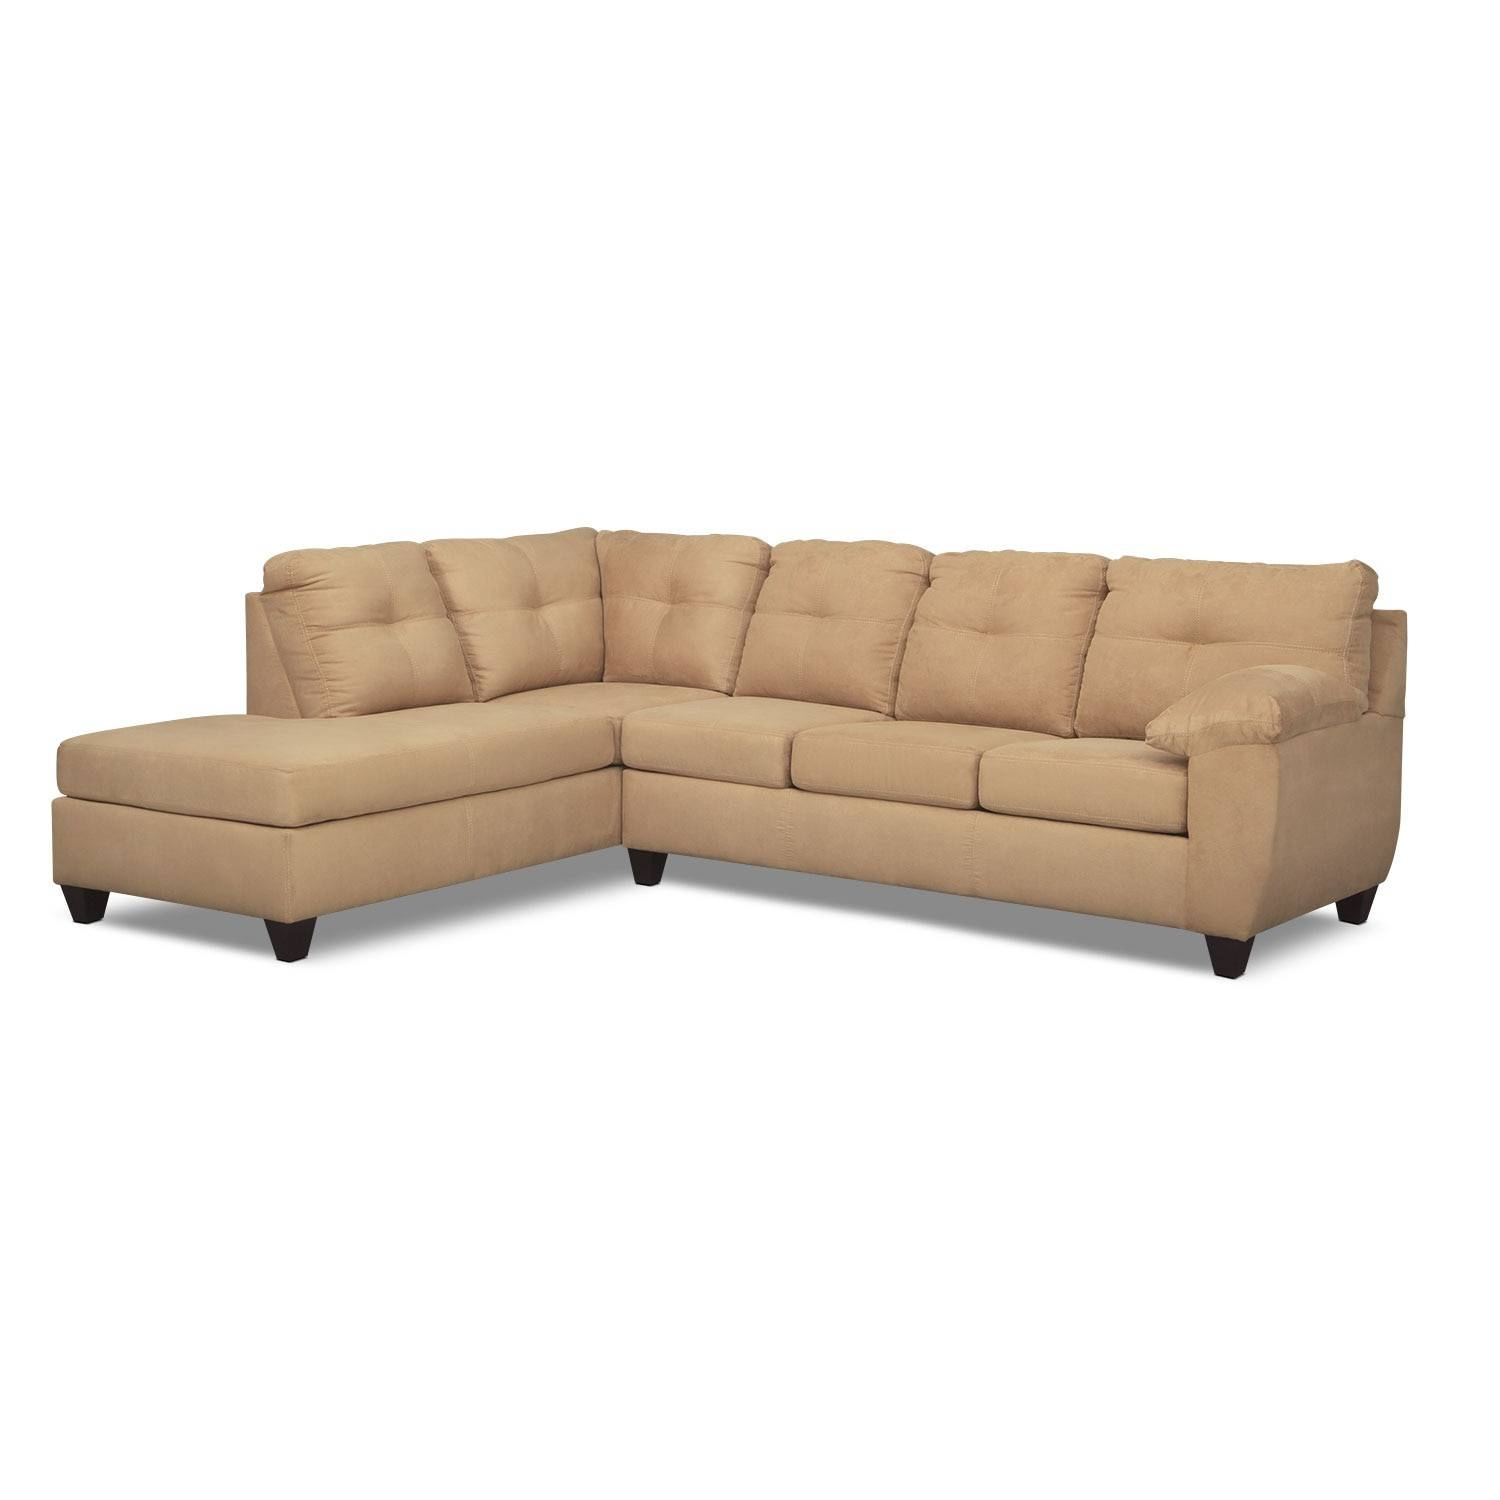 Sleeper Sofas | Value City | Value City Furniture for Value City Sofas (Image 17 of 25)